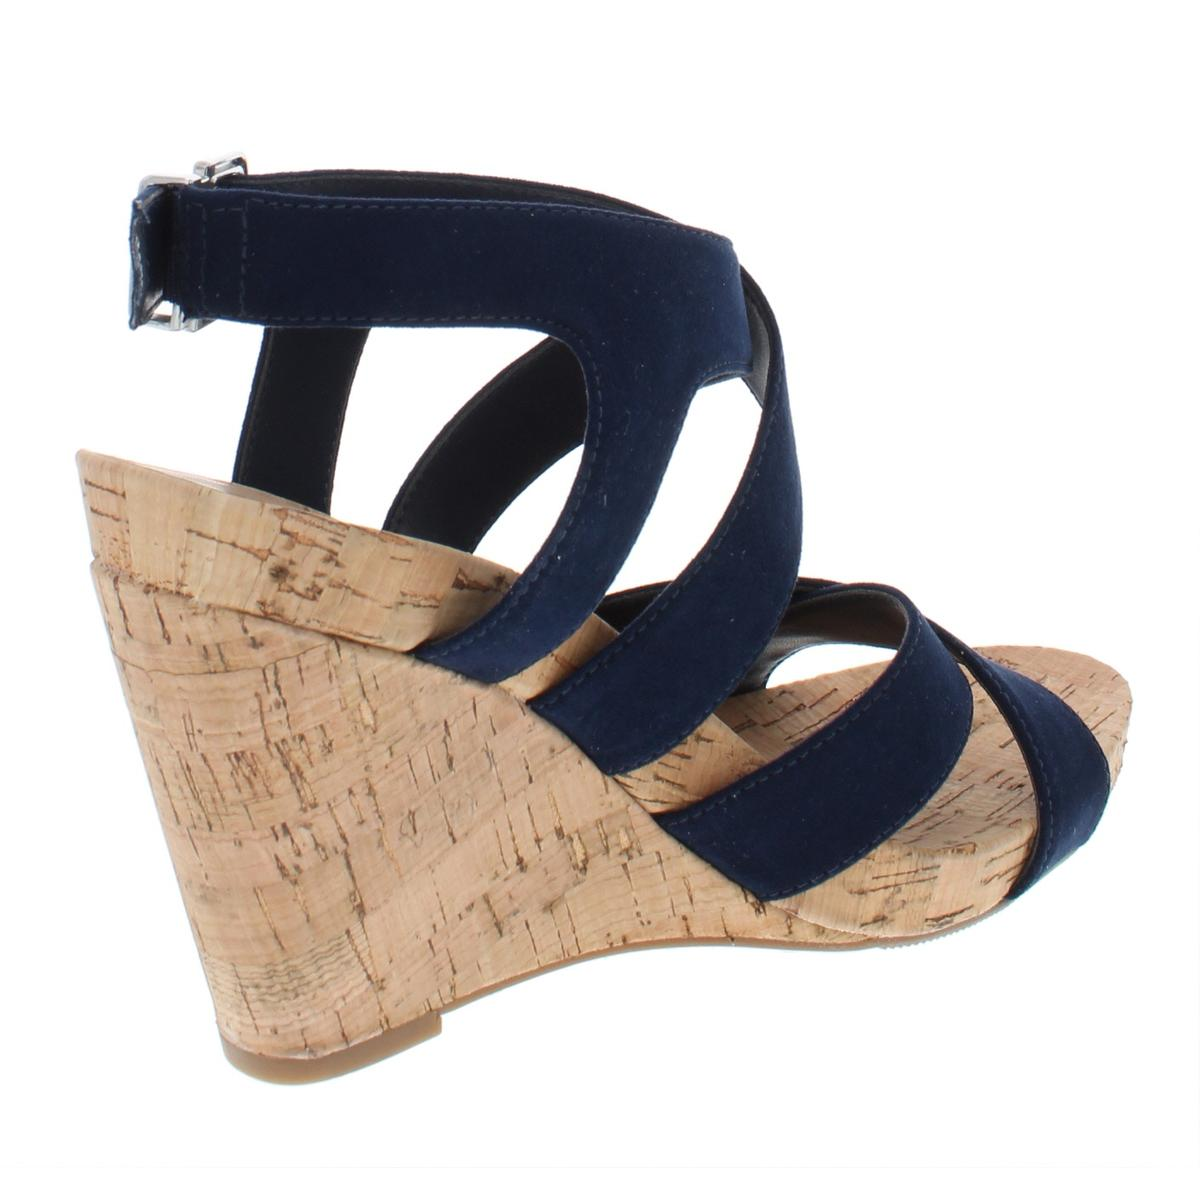 INC-Womens-Landor-Solid-Strappy-Ankle-Strap-Wedges-Sandals-BHFO-6322 thumbnail 4